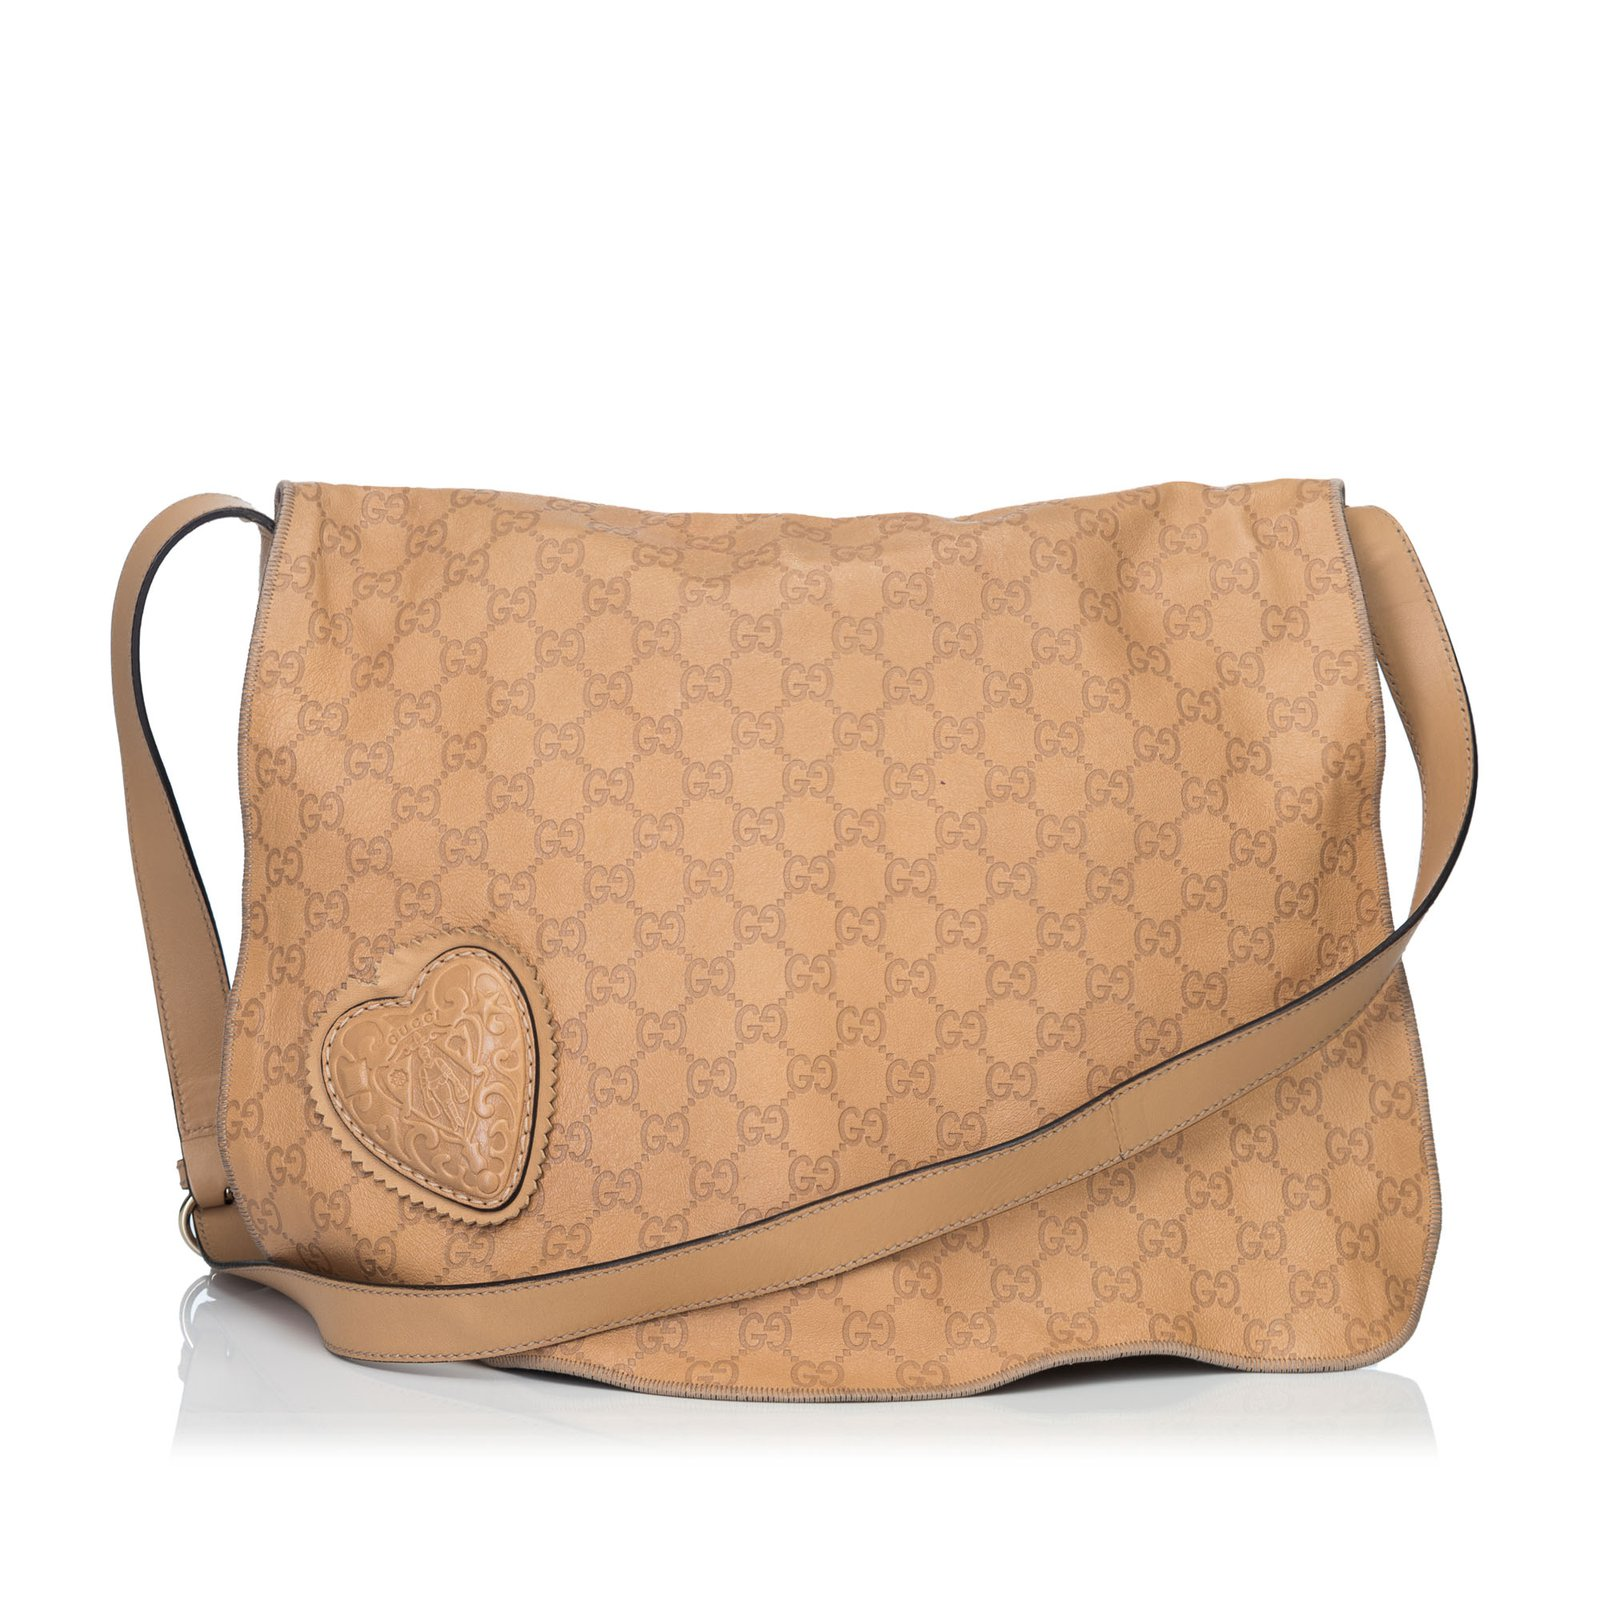 5c1e590663c4 Gucci Guccissima Leather Tribeca Messenger Bag Handbags Leather,Other  Brown,Beige ref.92007